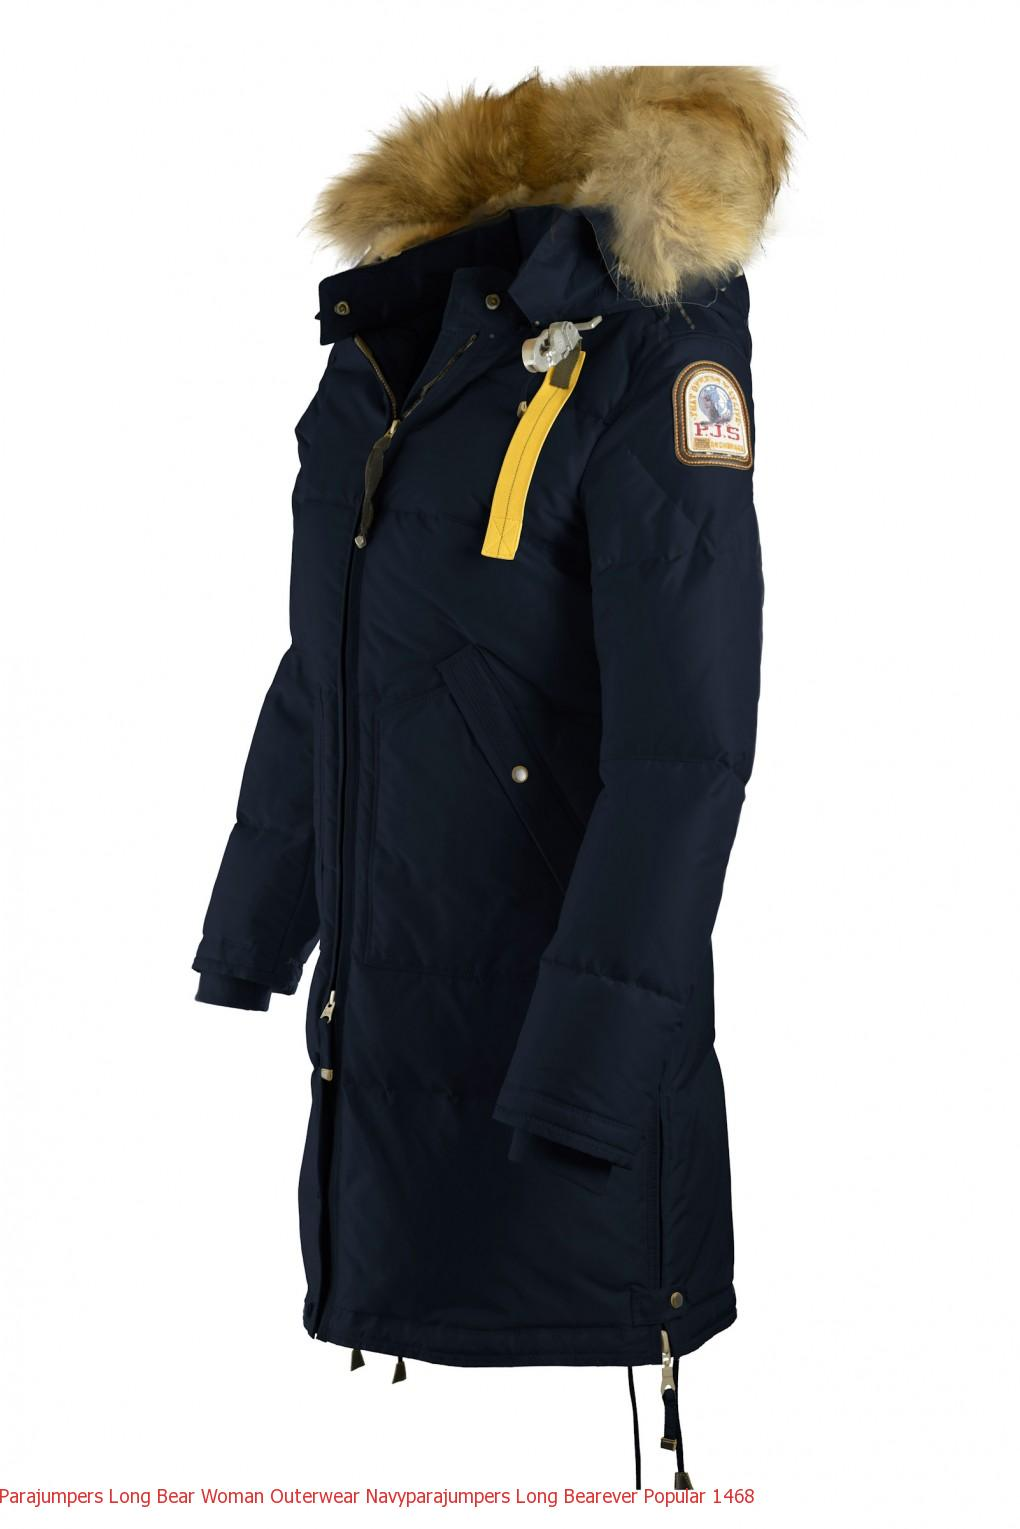 Parajumpers Long Bear Woman Outerwear Navyparajumpers Long Bearever Popular 1474